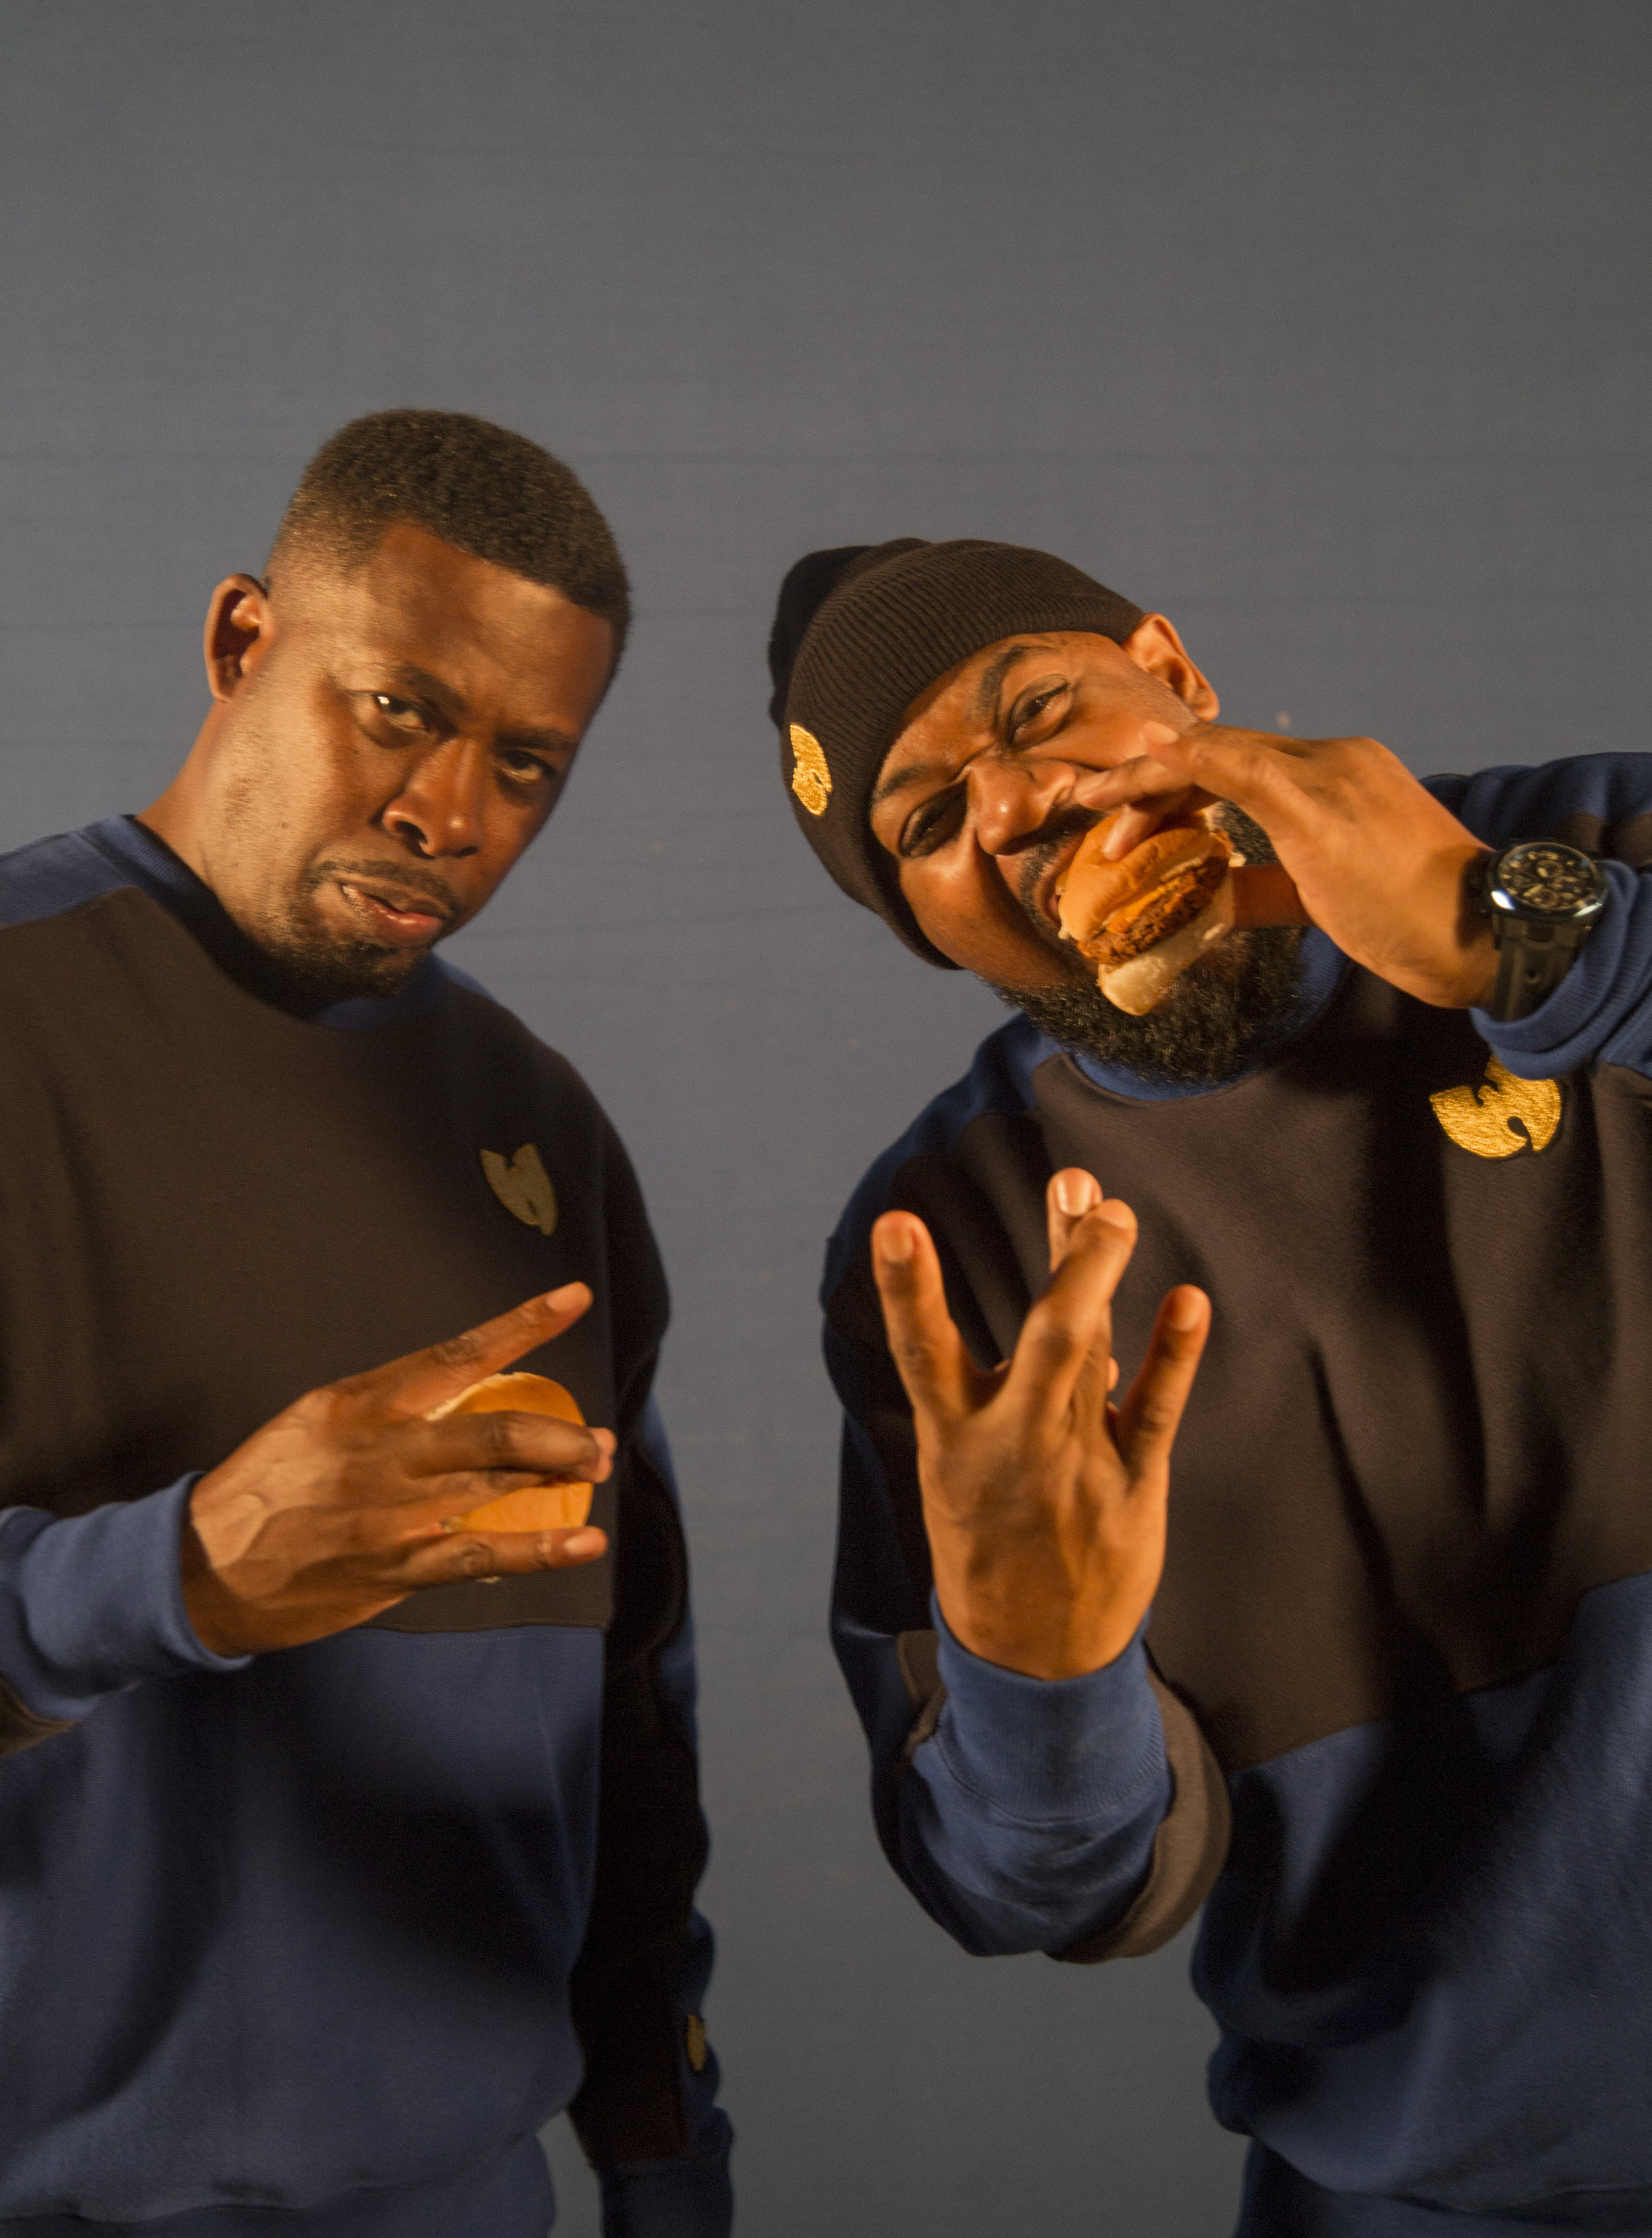 GZA & Ghostface, Photo Credit: Impossible Foods